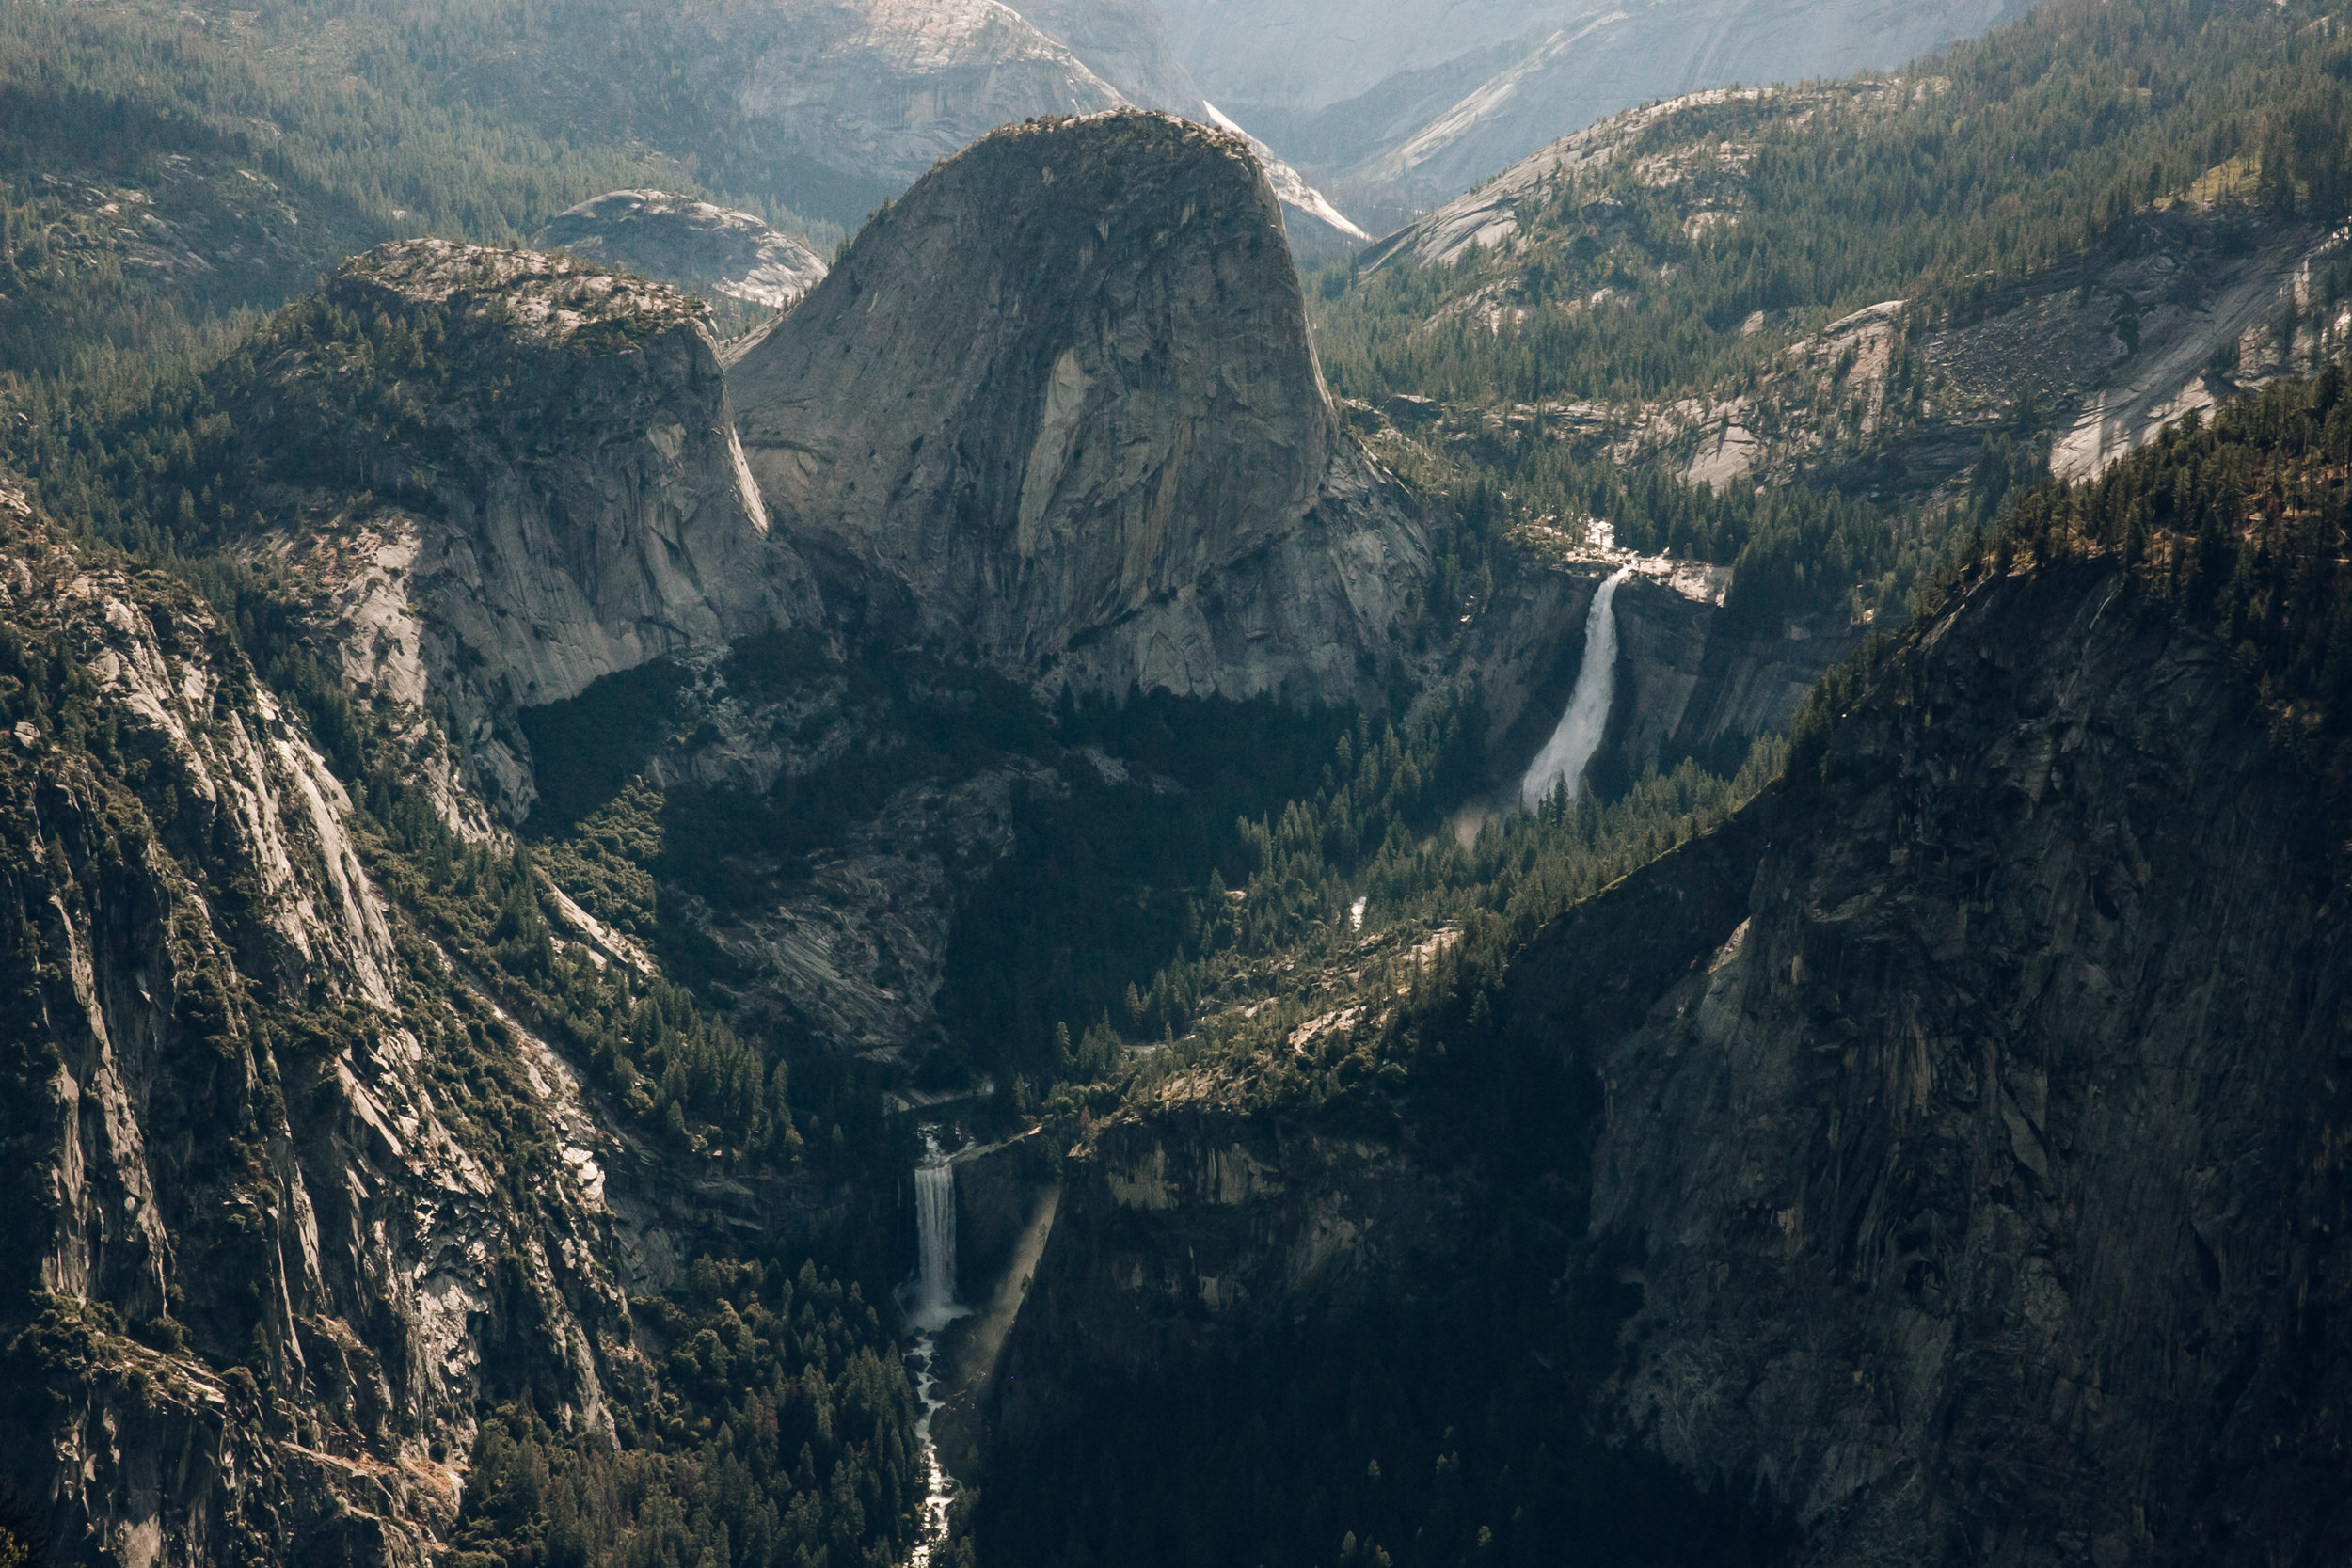 The view from Glacier Point in Yosemite National Park.